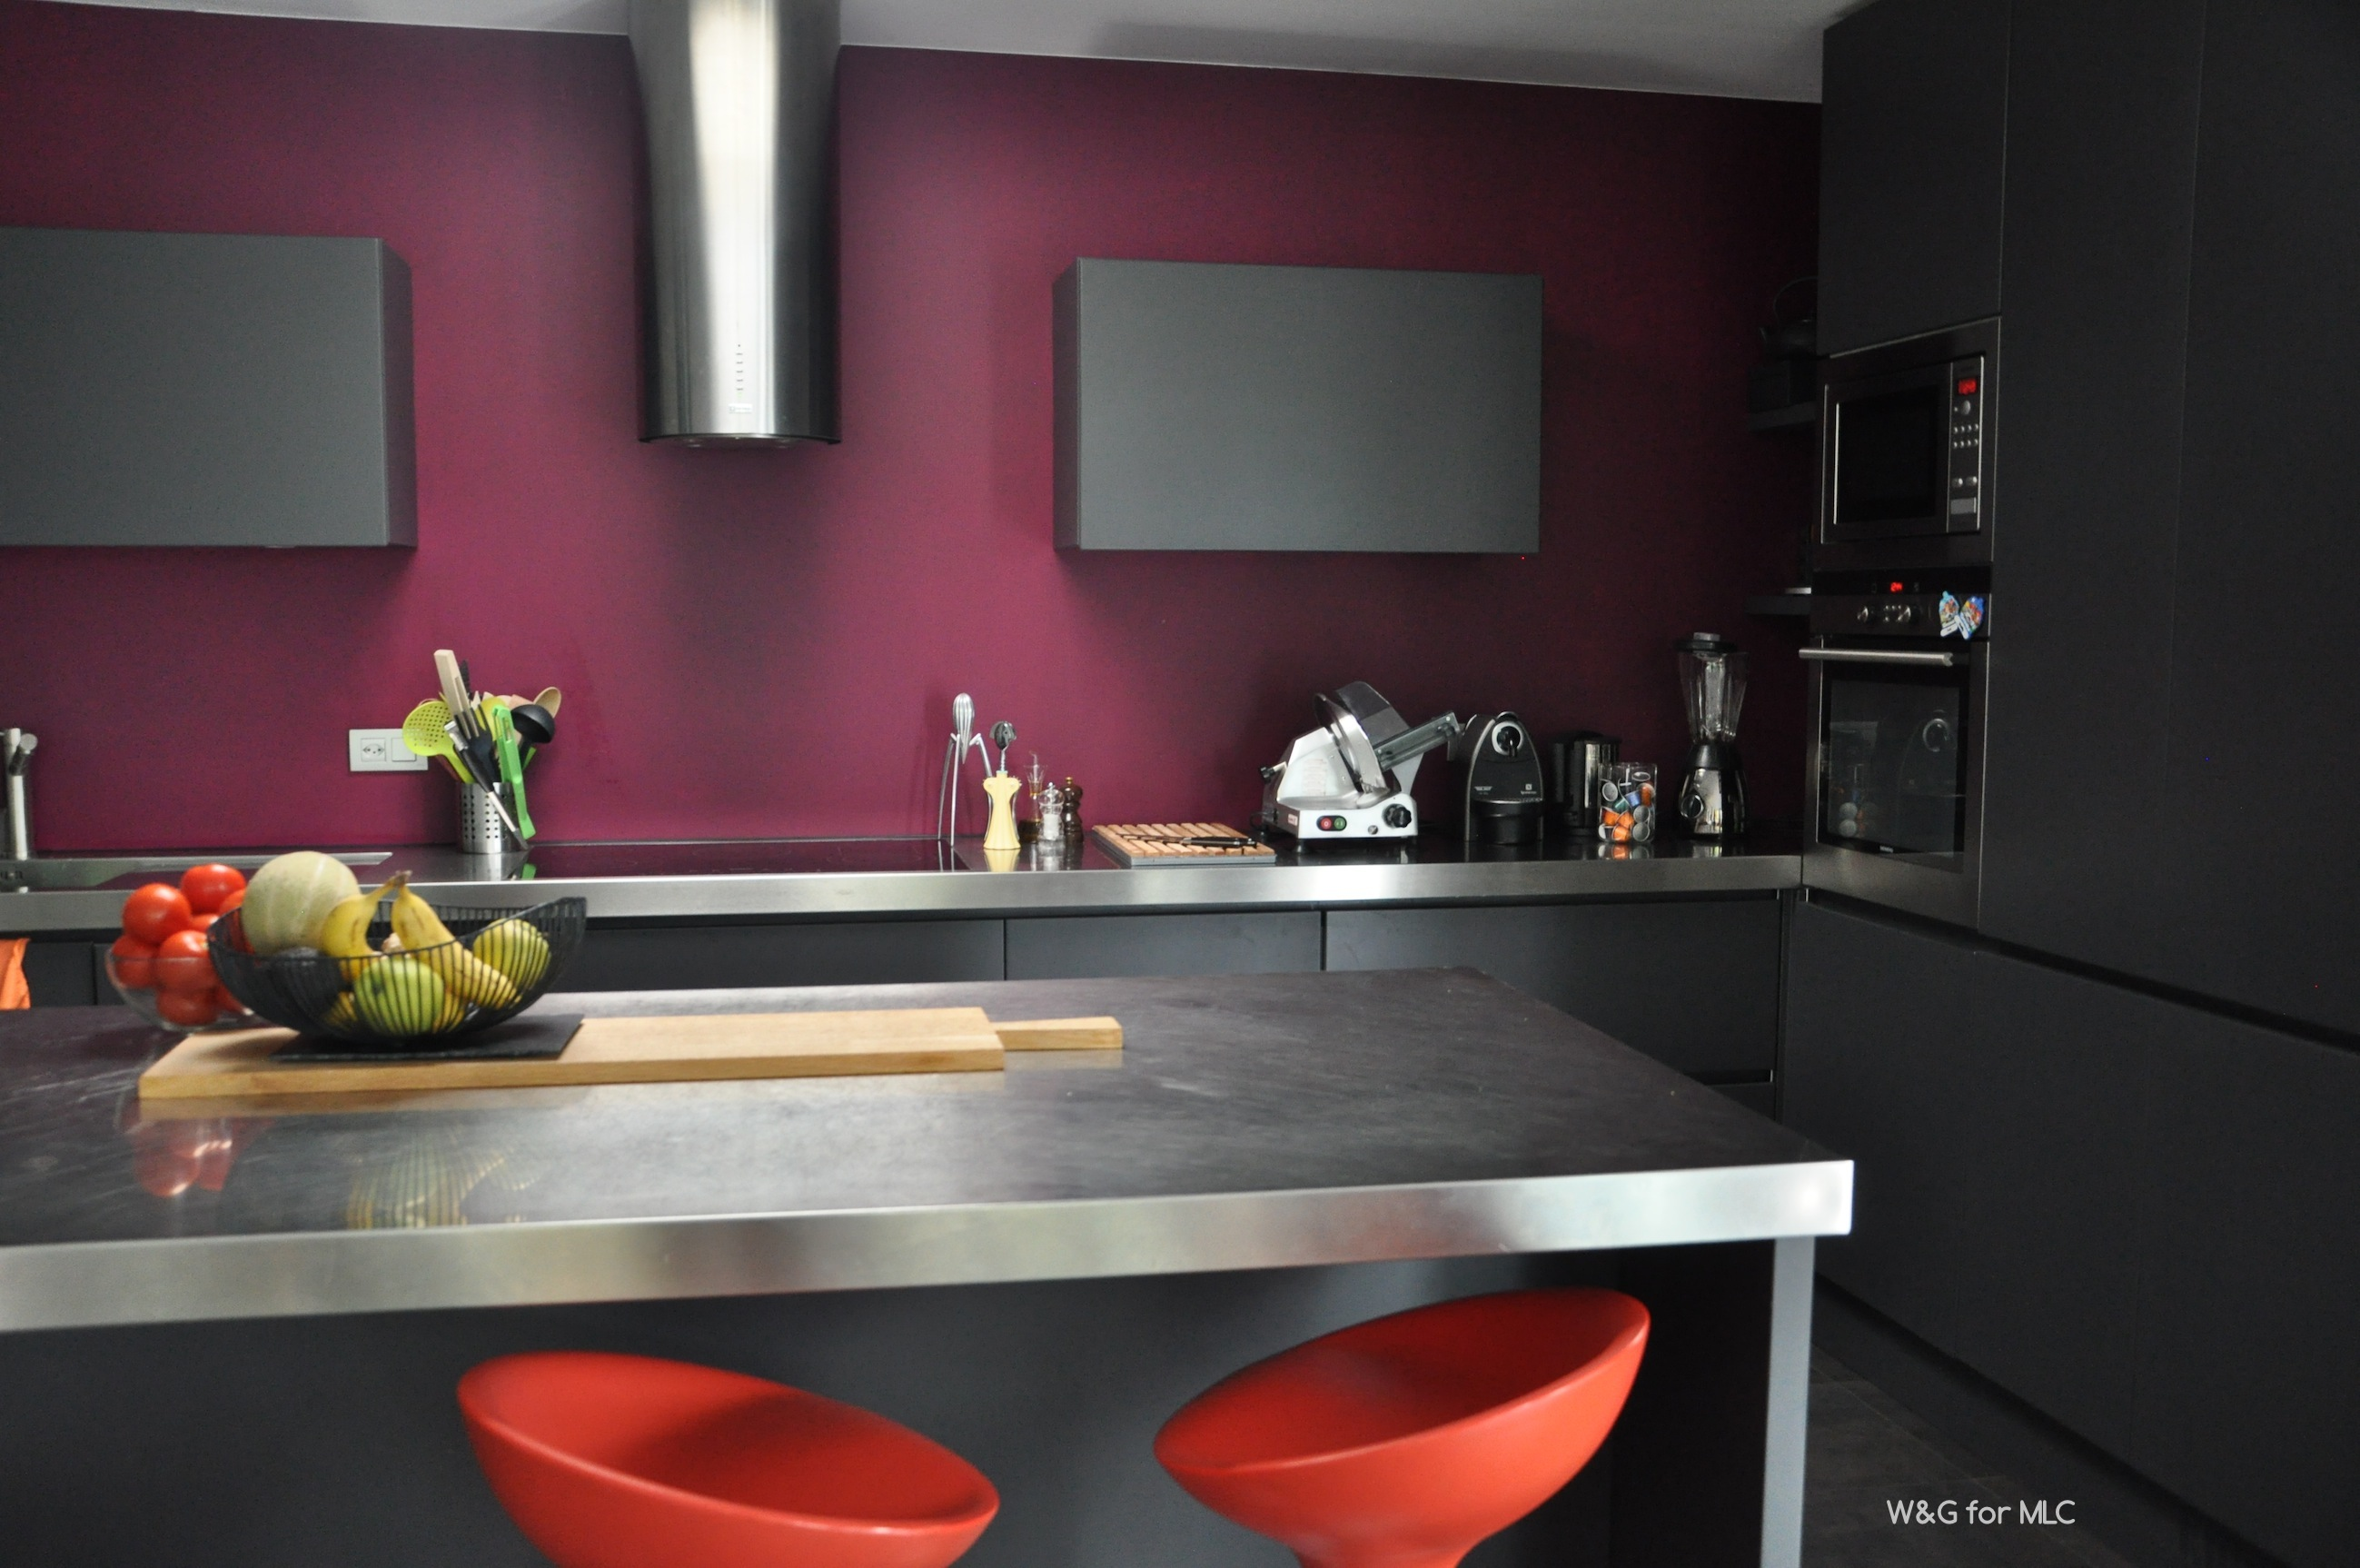 Cuisine anthracite sur fond fushia archives le blog d co for Cuisine decoration interieur